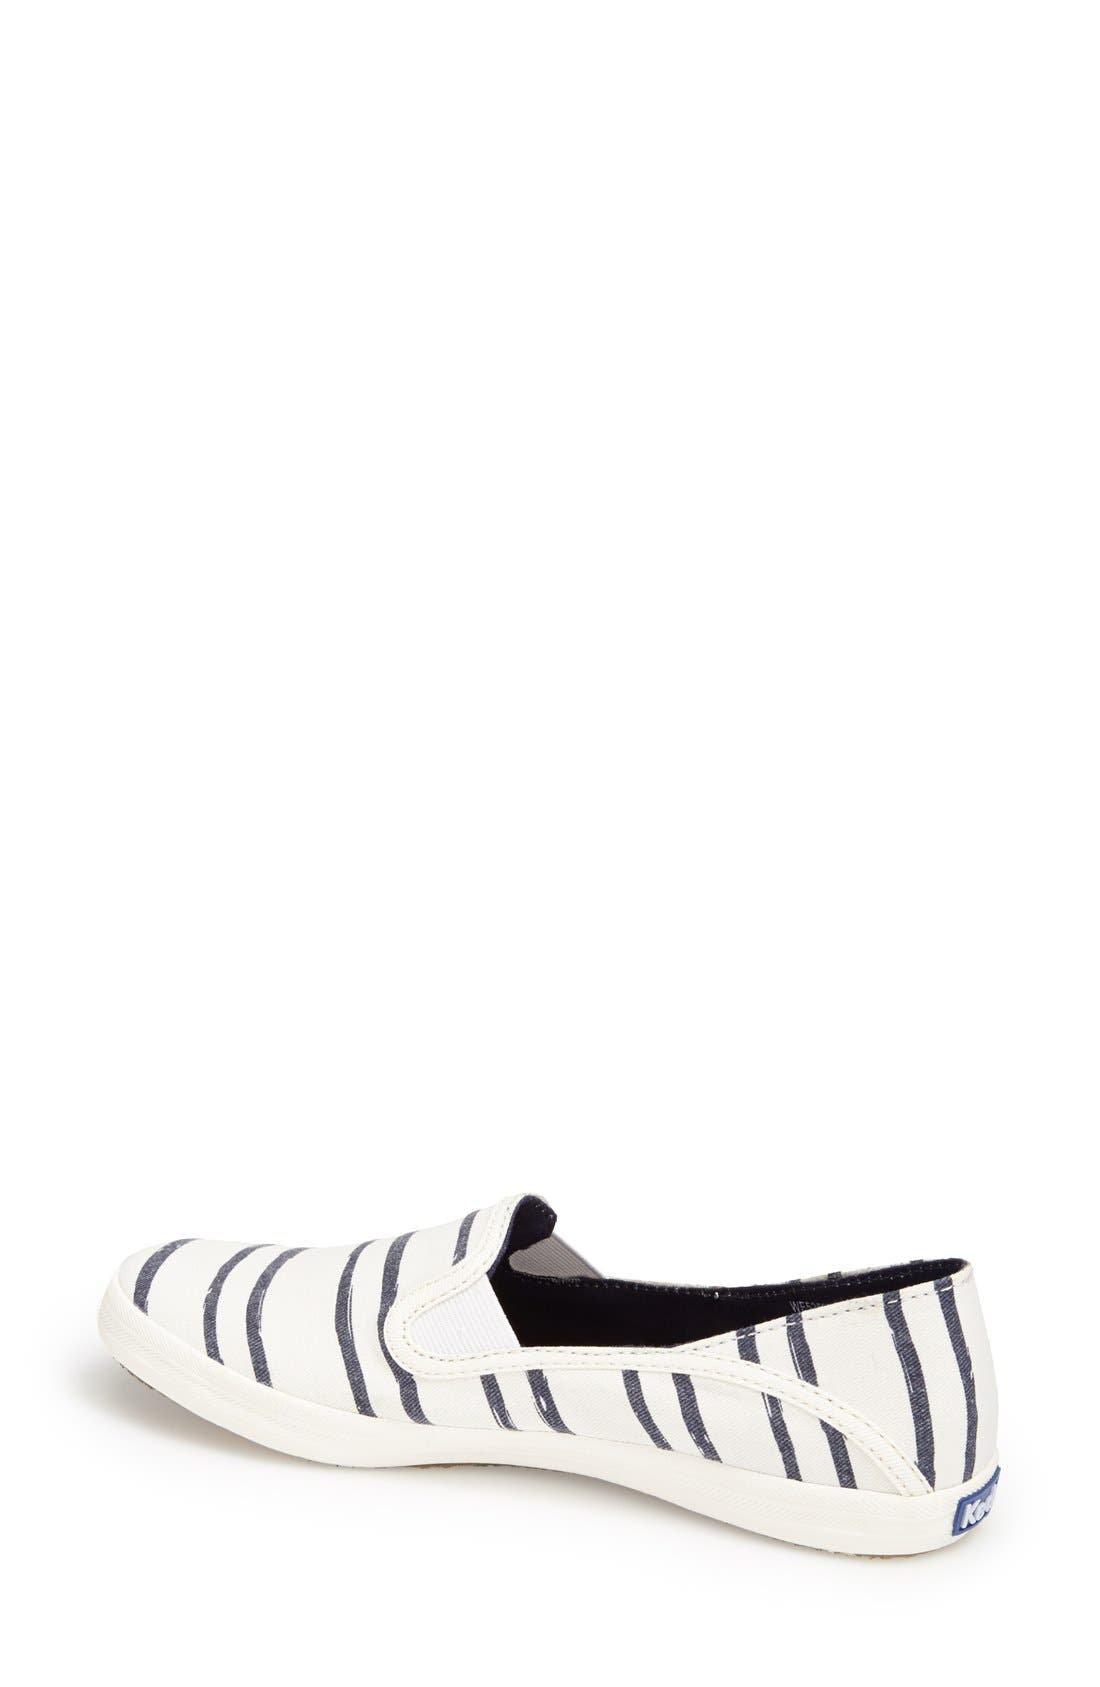 Alternate Image 2  - Keds® 'Crashback - Washed Beach Stripe' Slip-On Sneaker (Women)